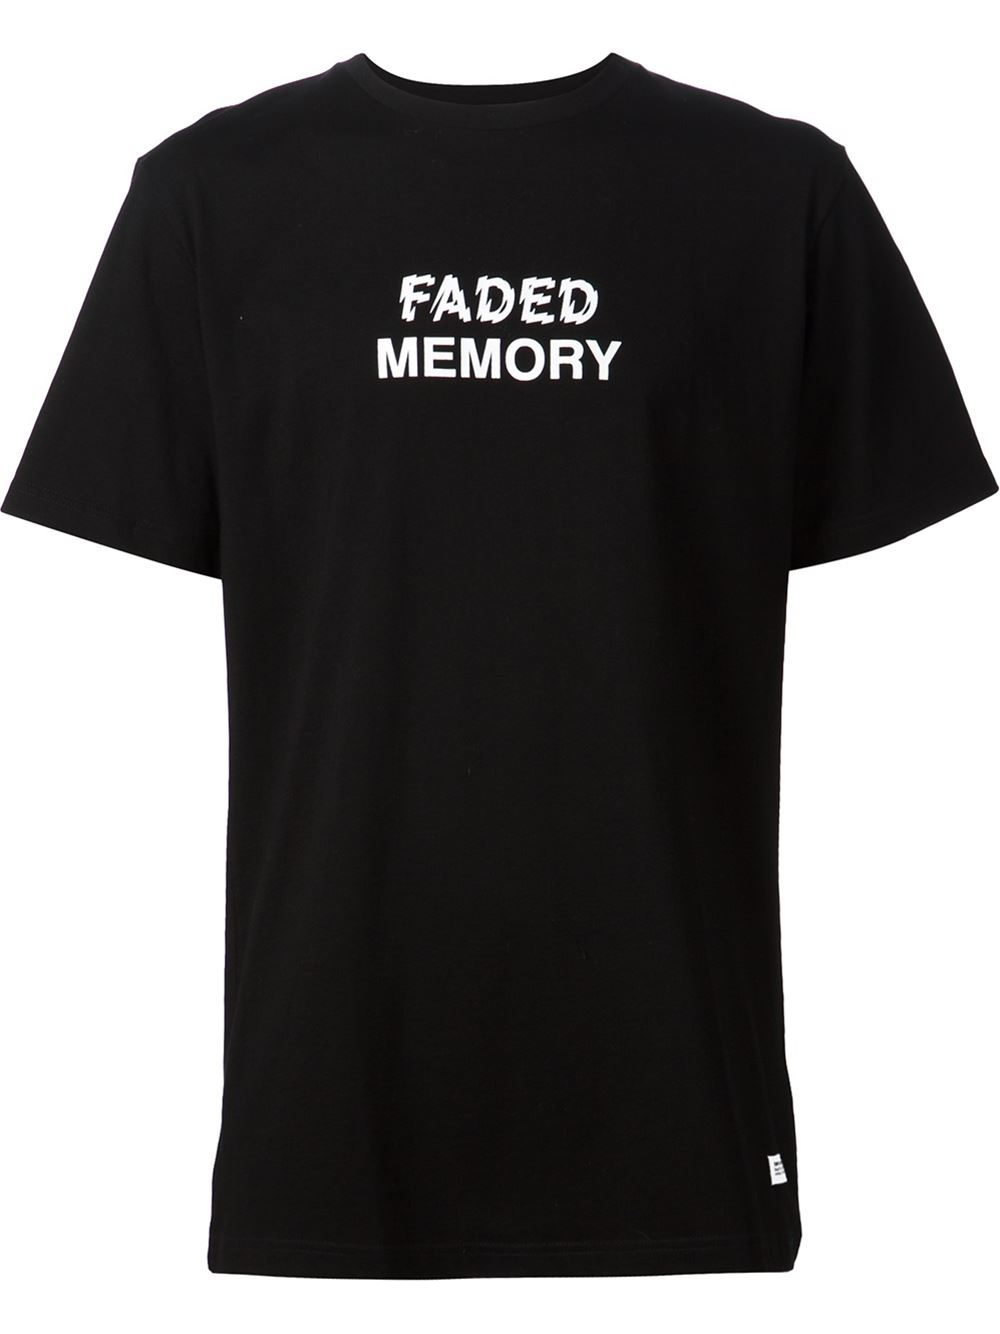 Stampd 39 faded memory 39 t shirt in black for men lyst for Faded color t shirts